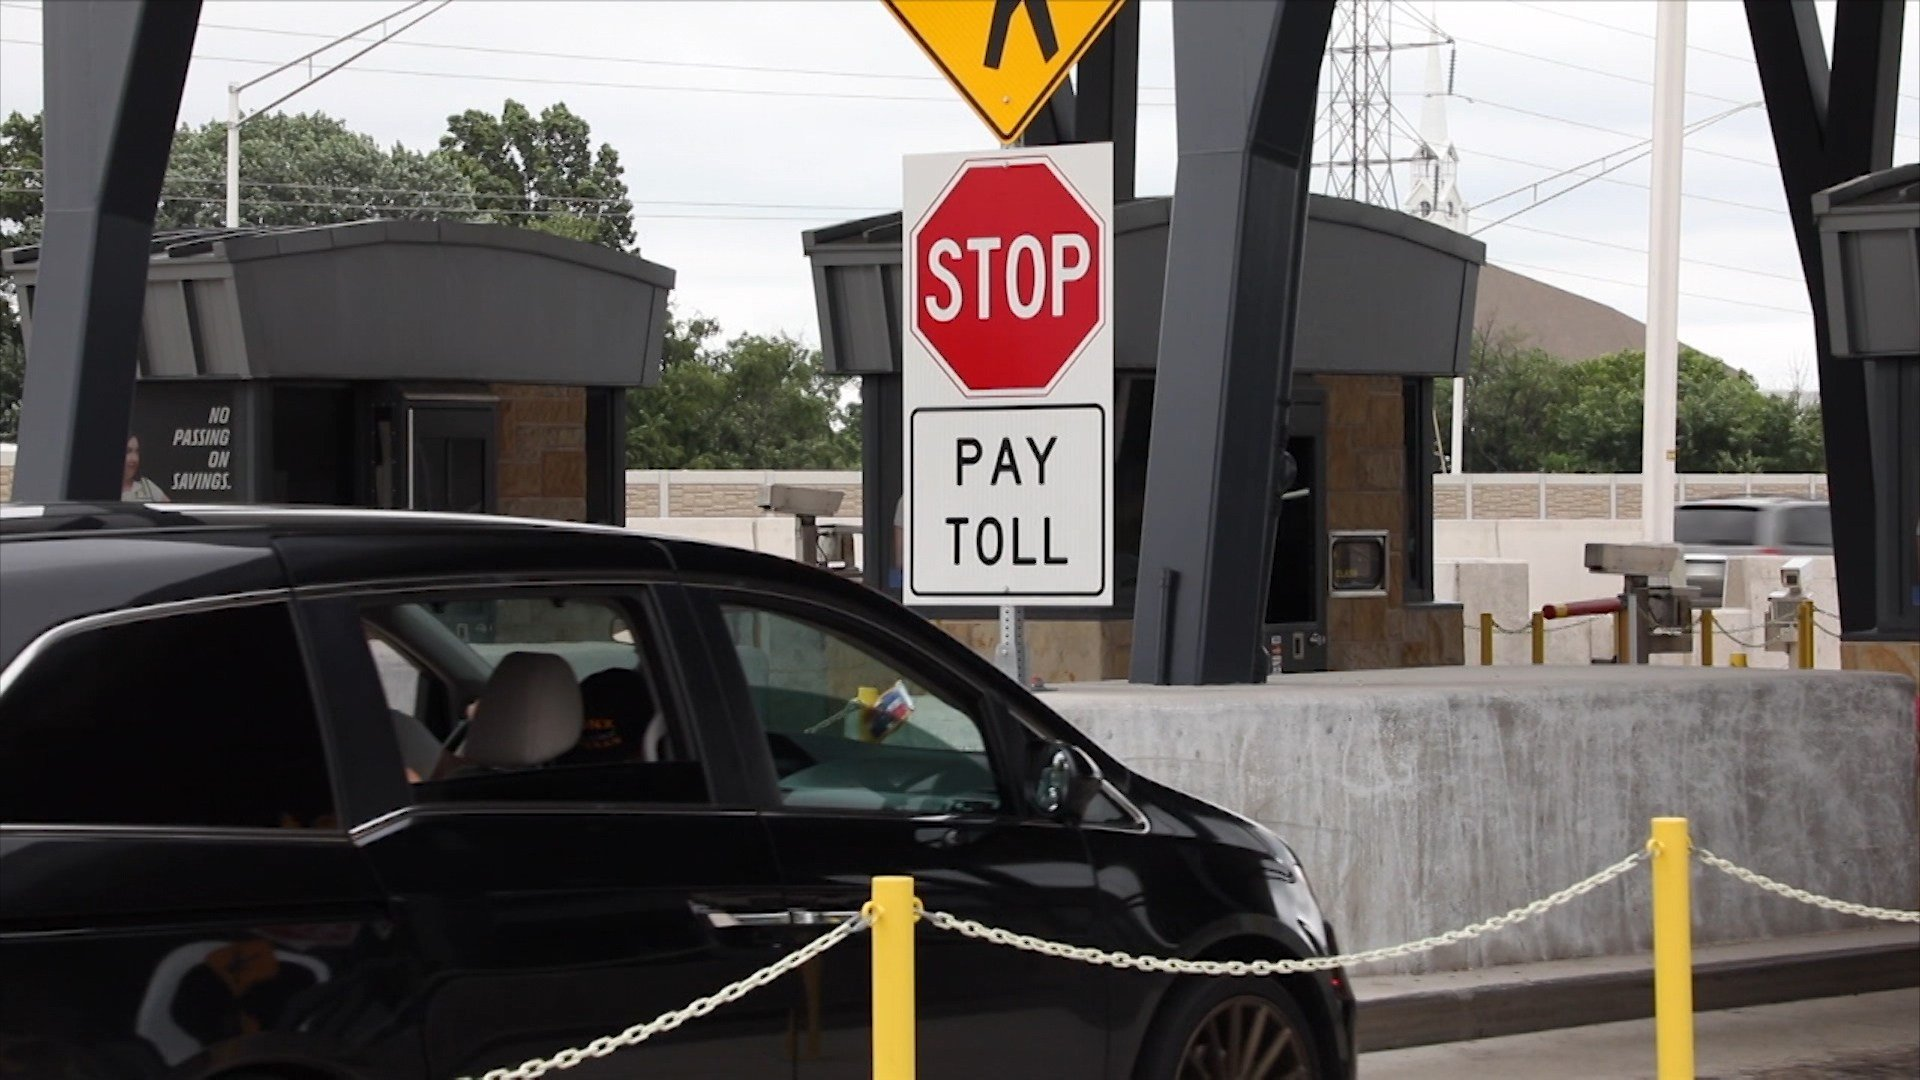 Turnpike warns toll scofflaws to pay up now